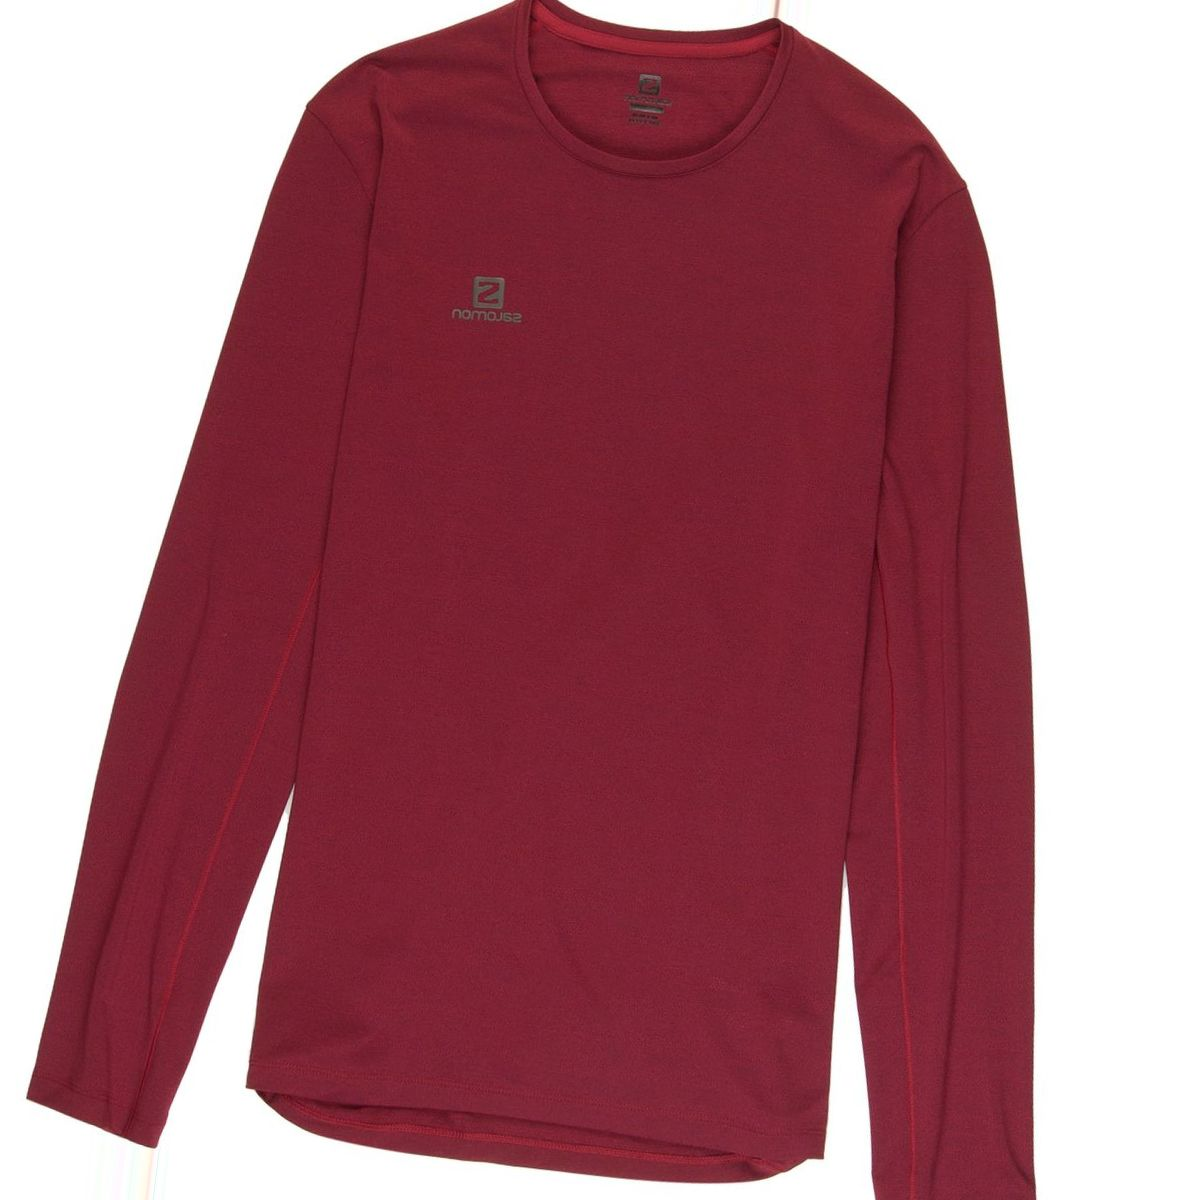 Salomon XA Long-Sleeve T-Shirt - Men's